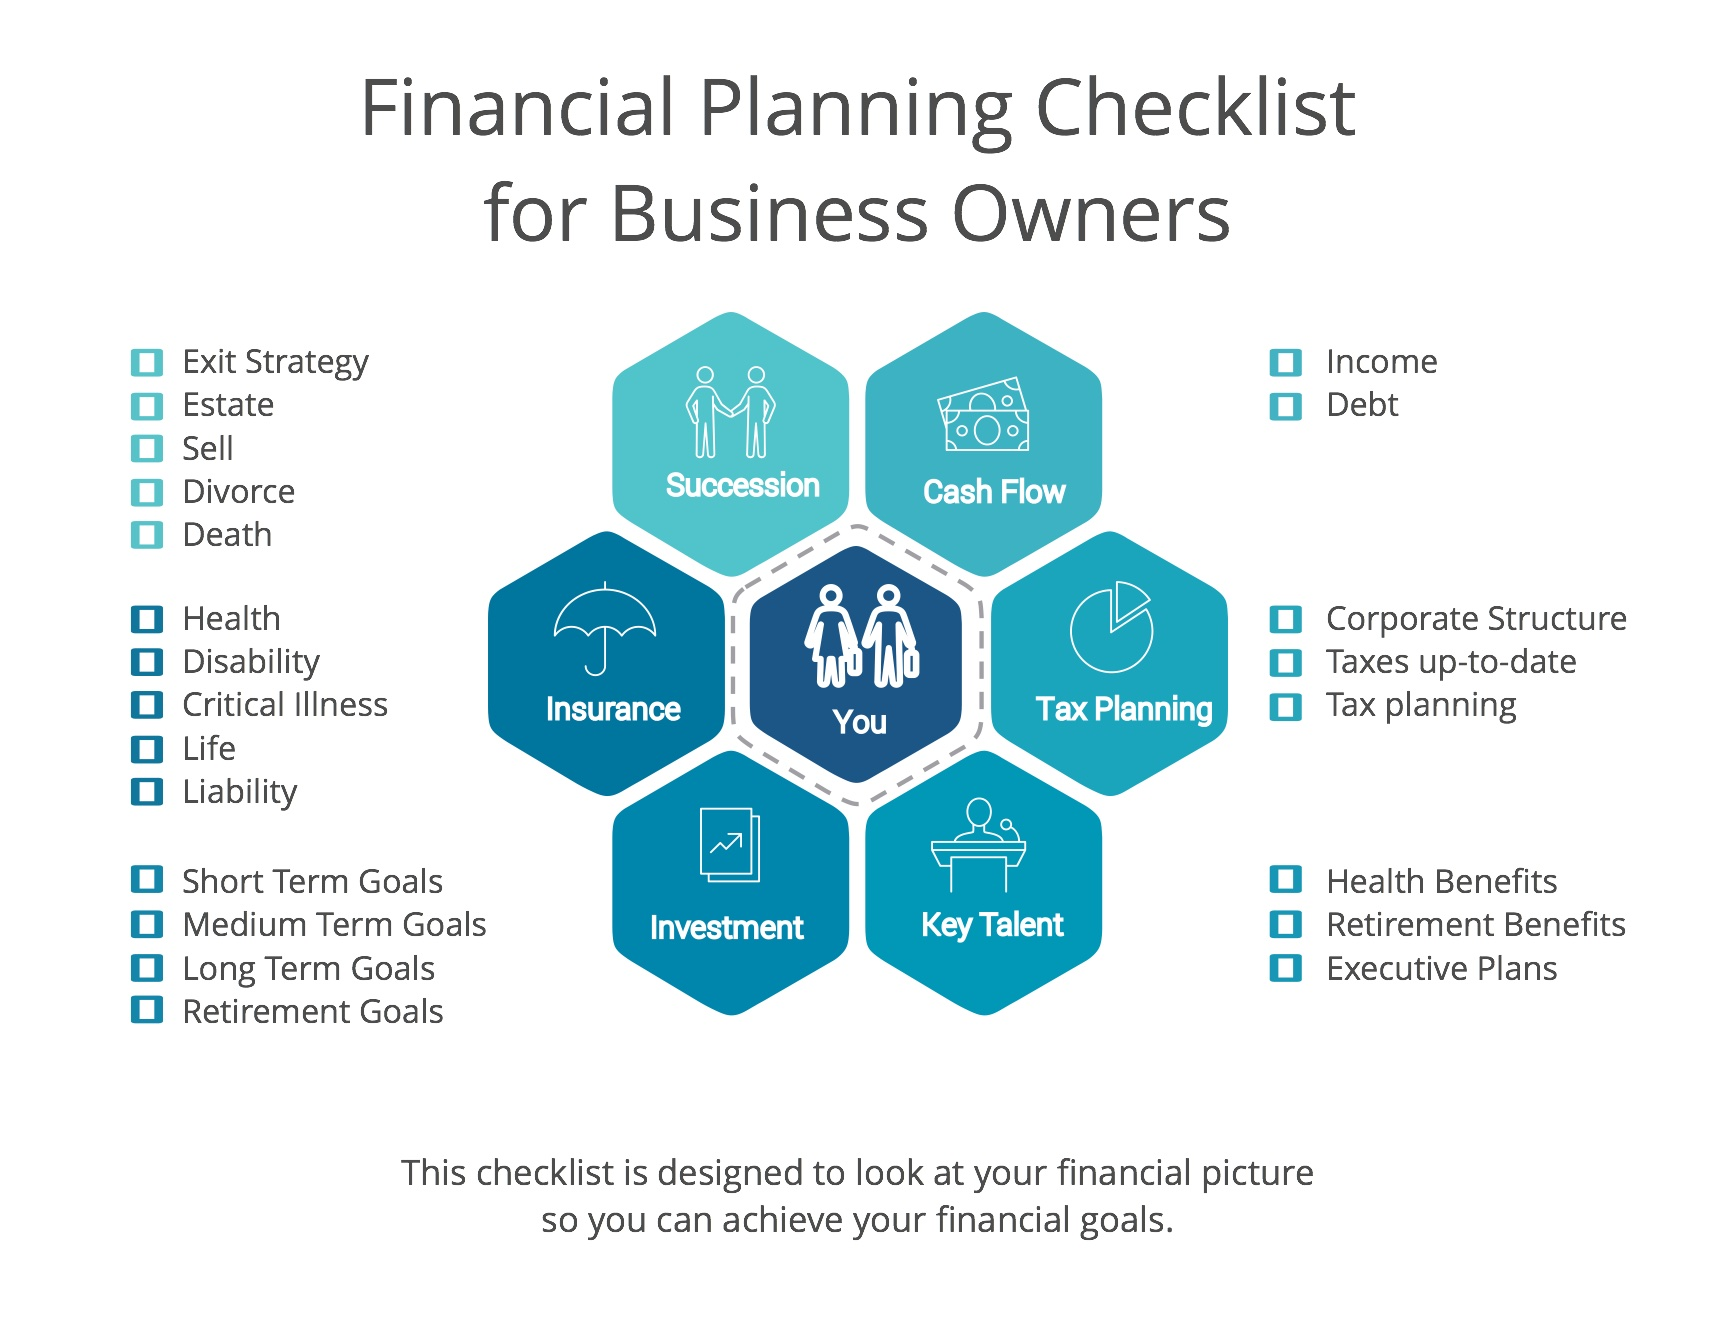 Financial Planning Checklist For Business Owners